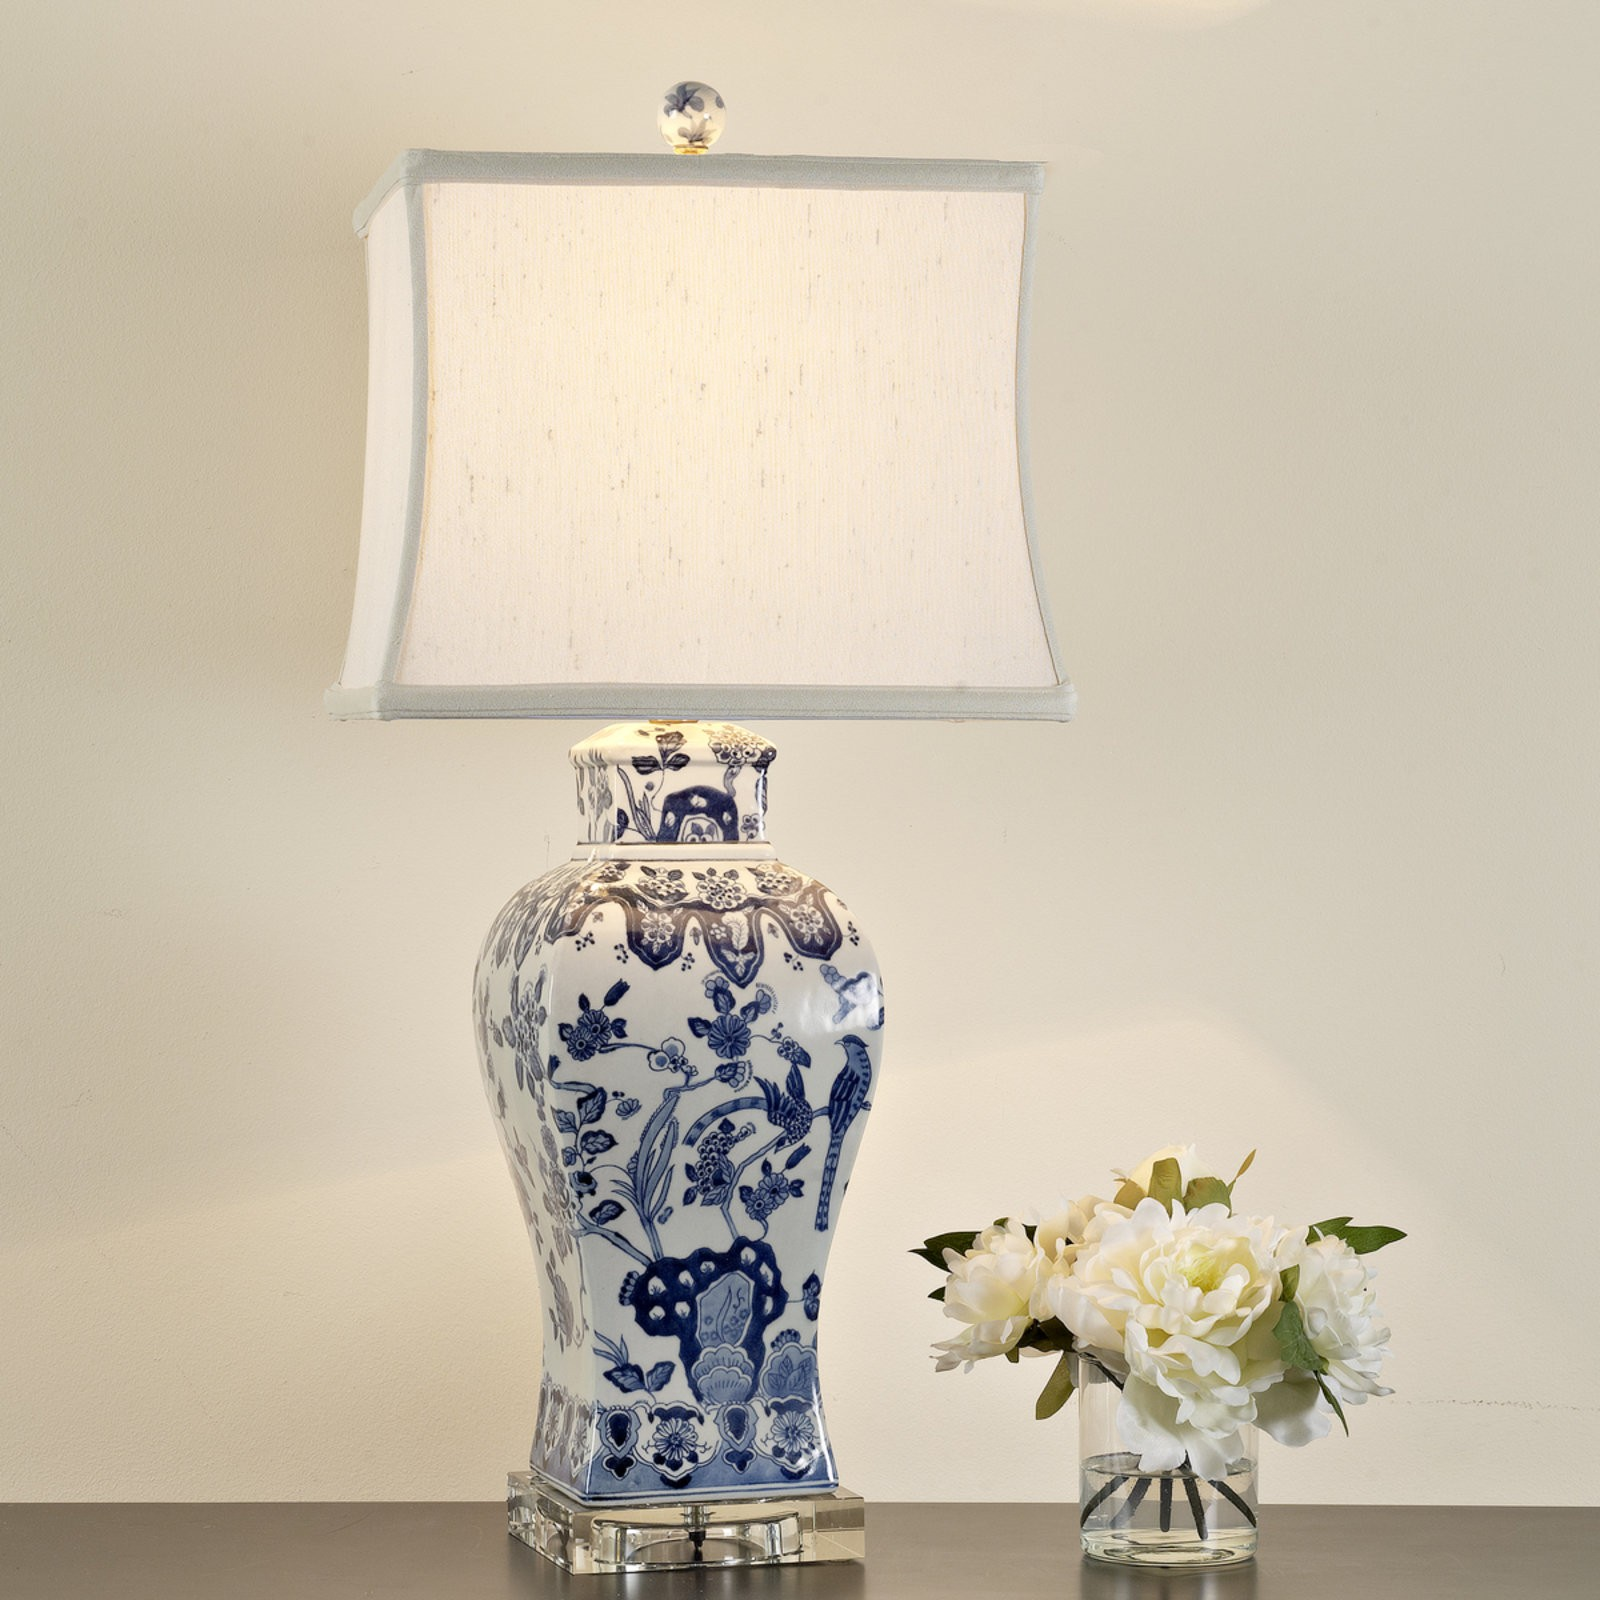 Charmant Blue And White Porcelain Table Lamps